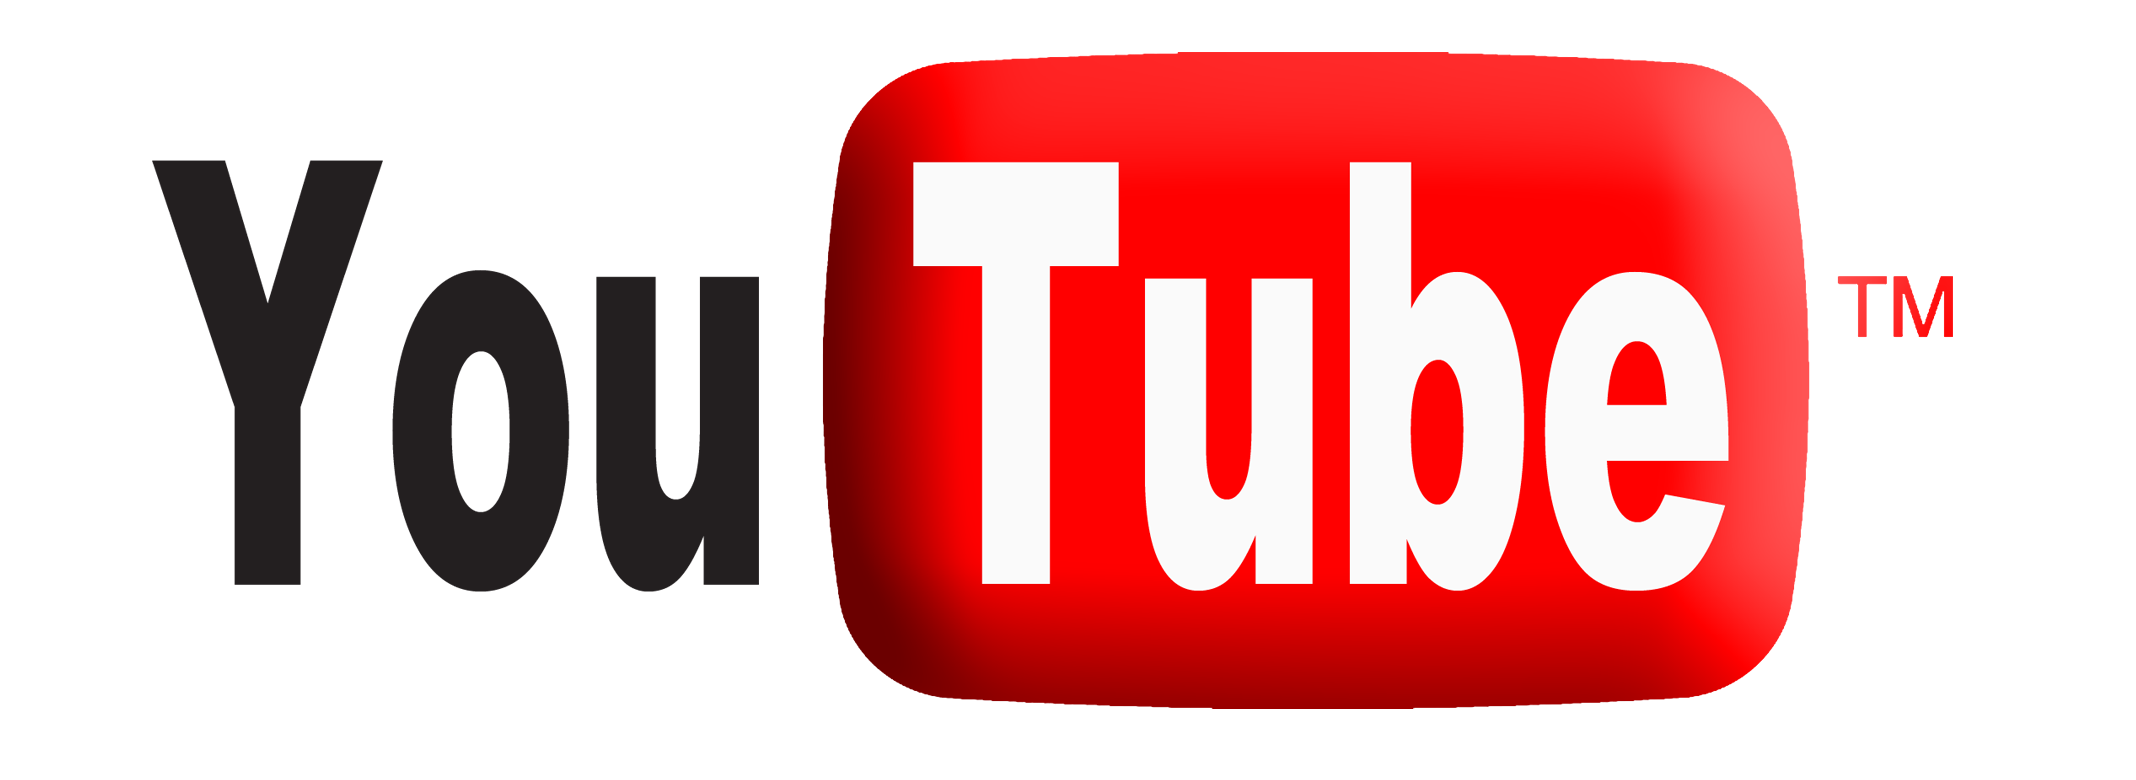 Youtube Logo HD PNG File image #46021